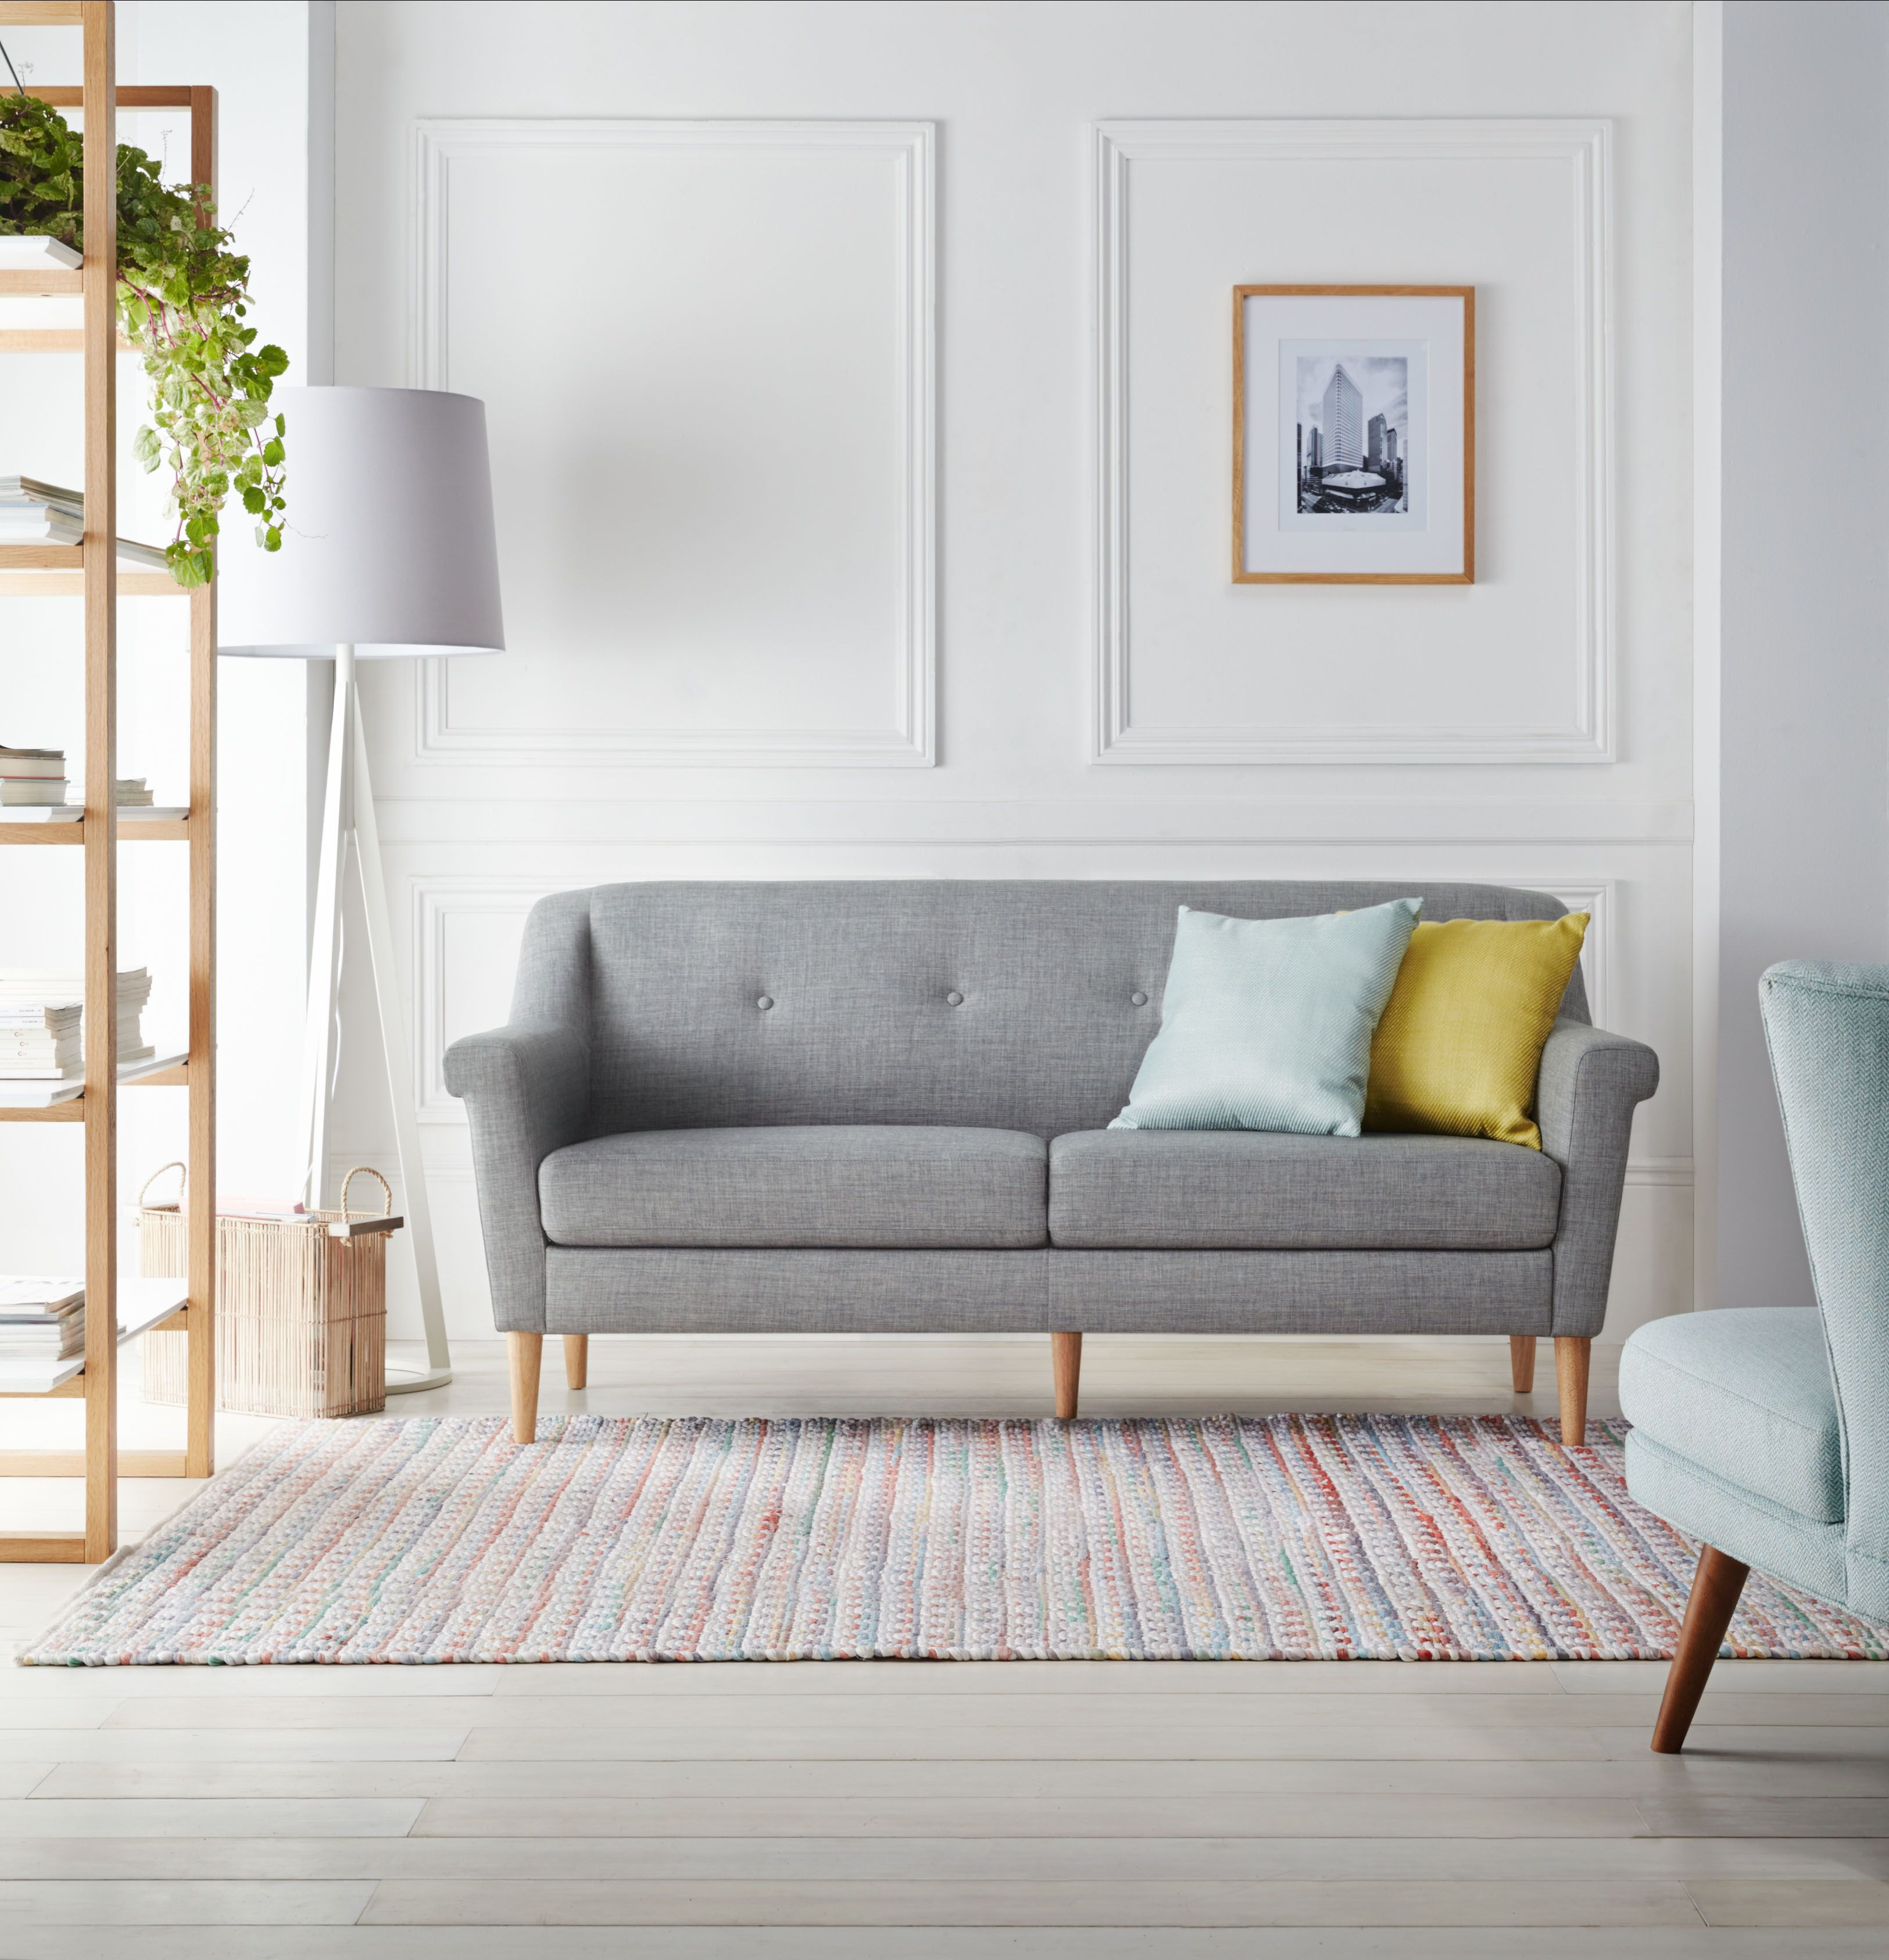 Shop the Look | Freedom Furniture and Homewares | Living room ...